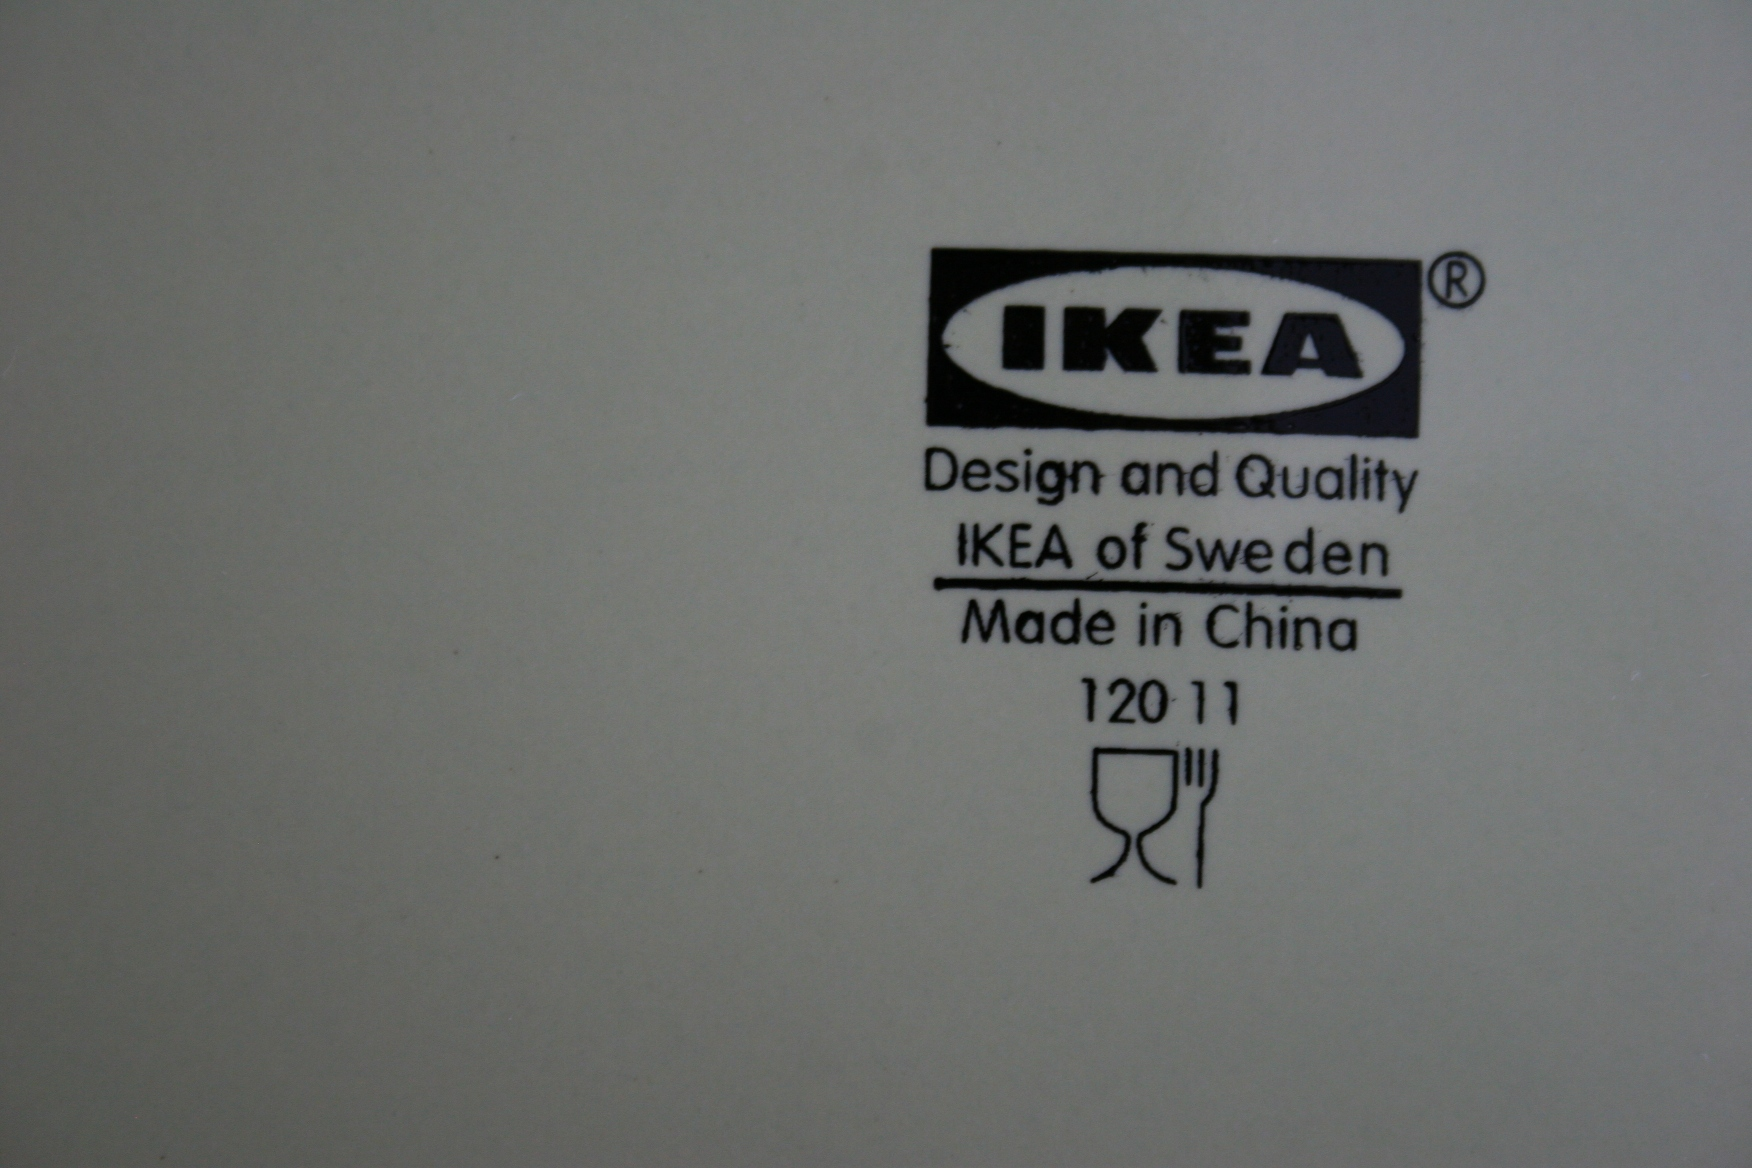 ikea in china sweden and the Ikea executives who couldn't put together why an ad was sexist have apologized the sweden-based furniture company issued an apology over a commercial that aired in china showing a young woman.